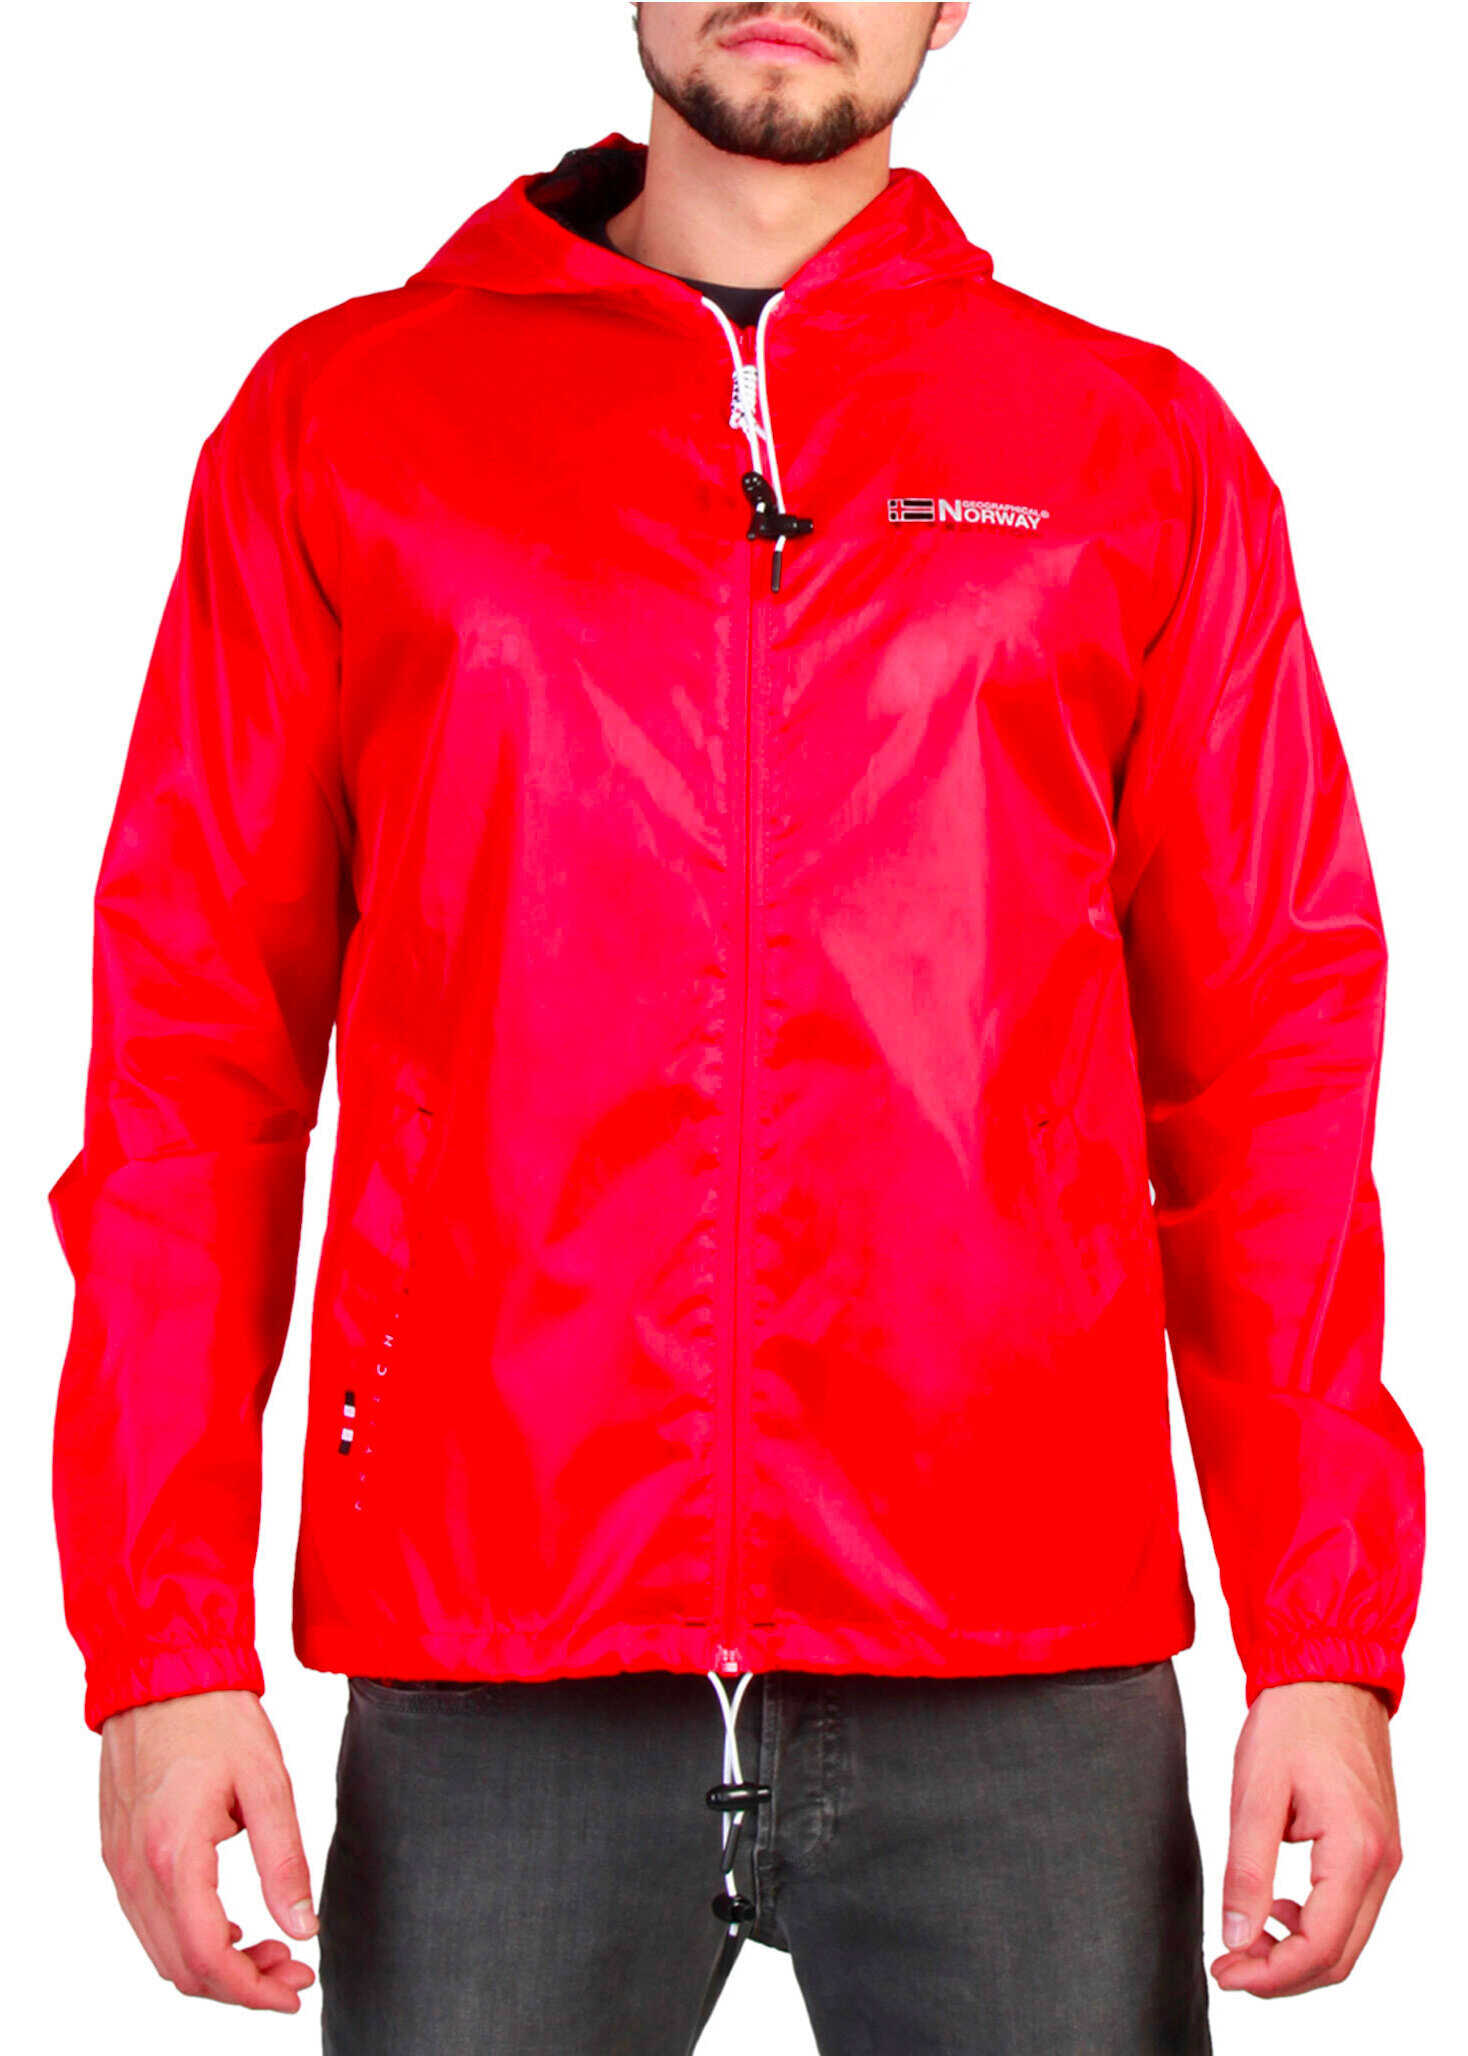 Geographical Norway Boat_Man Red